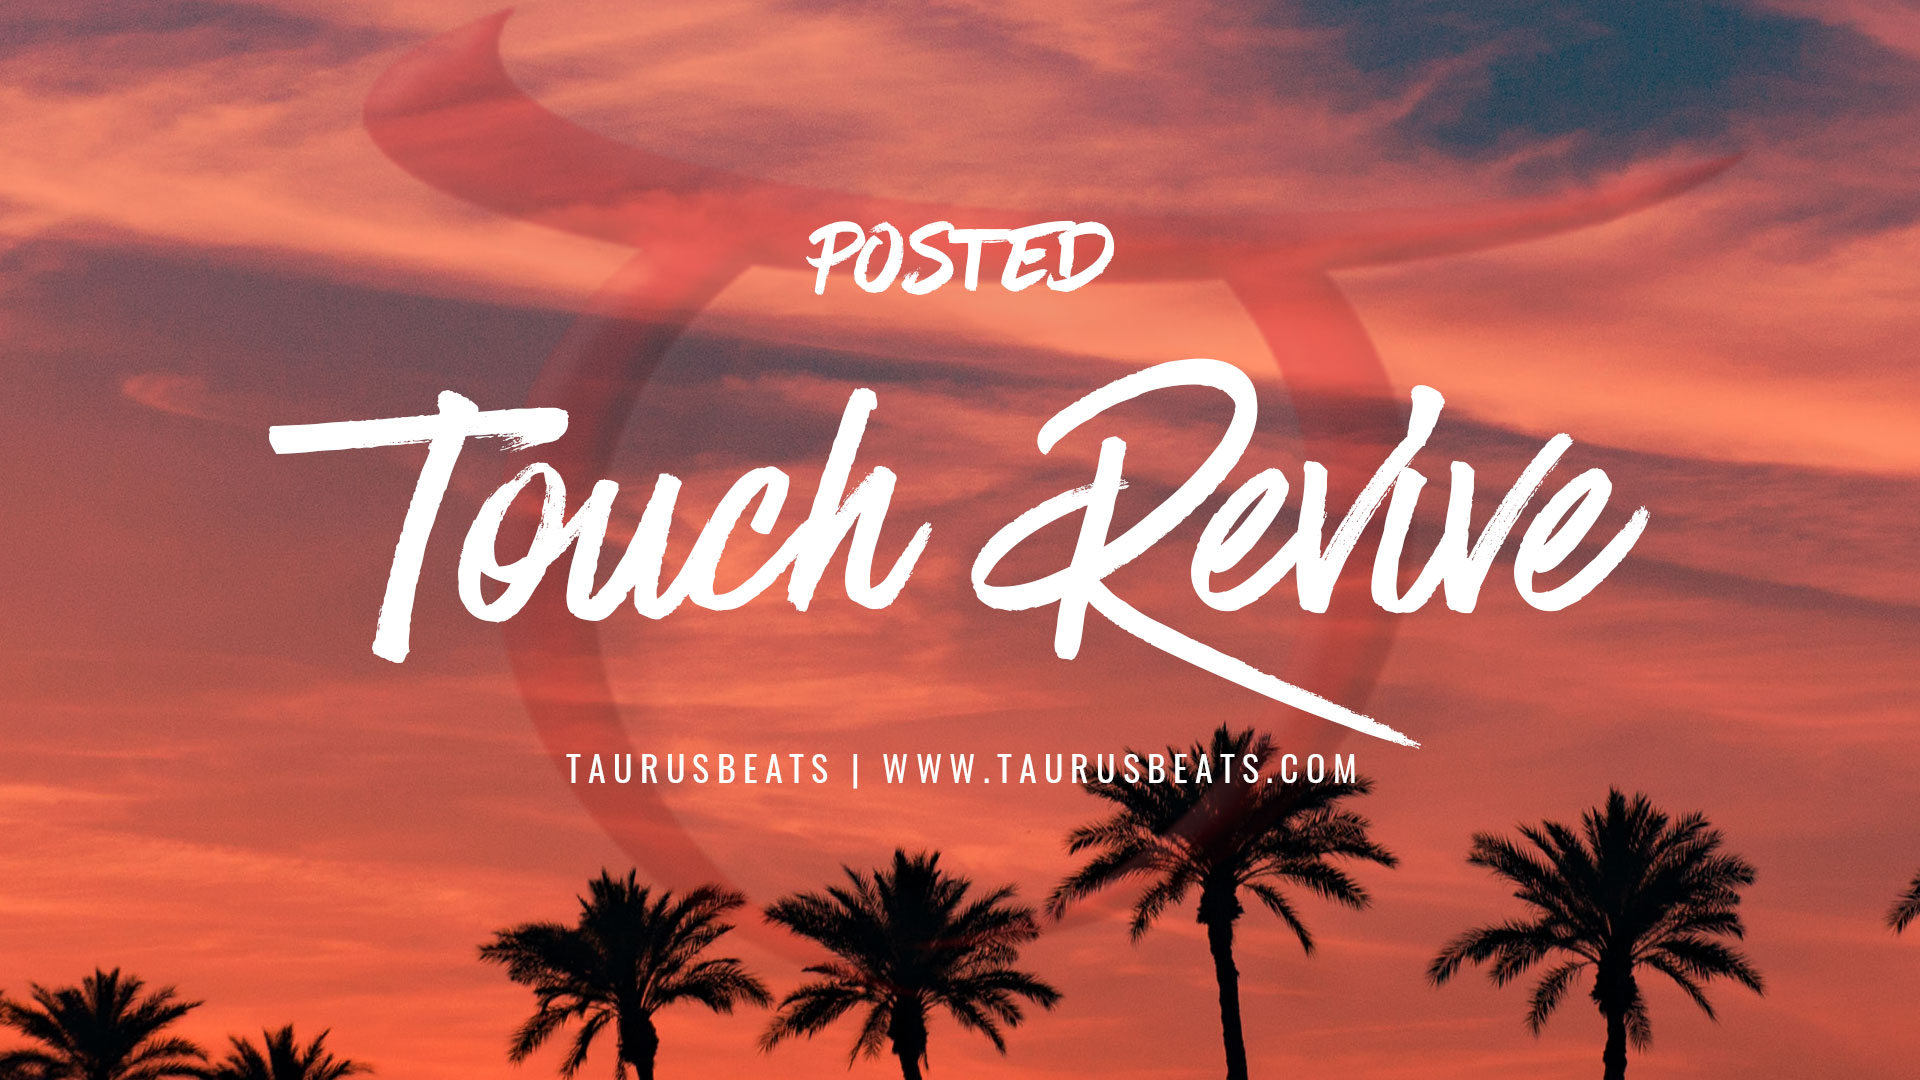 image for Touch Revive